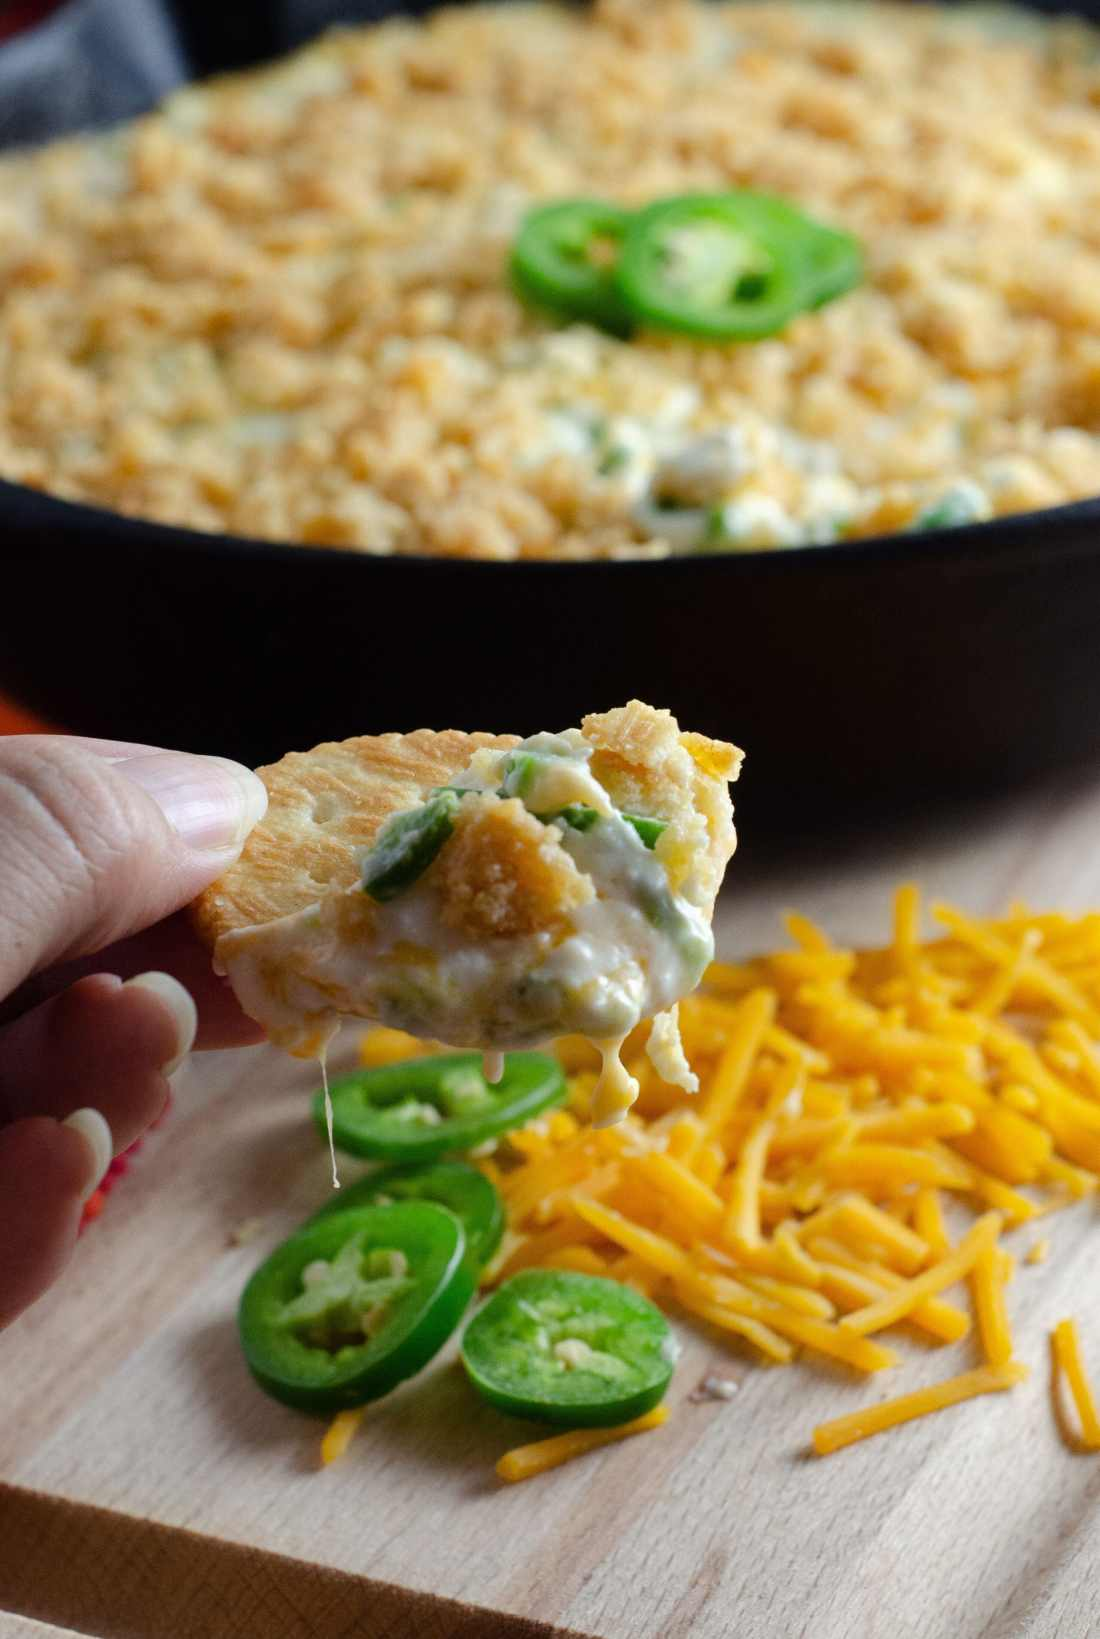 Jalapeño Popper Dip on Cracker Closeup. Elevate your holiday entertaining with some wholesome, flavorful California cheeses in this easy to make Jalapeño Popper Dip.